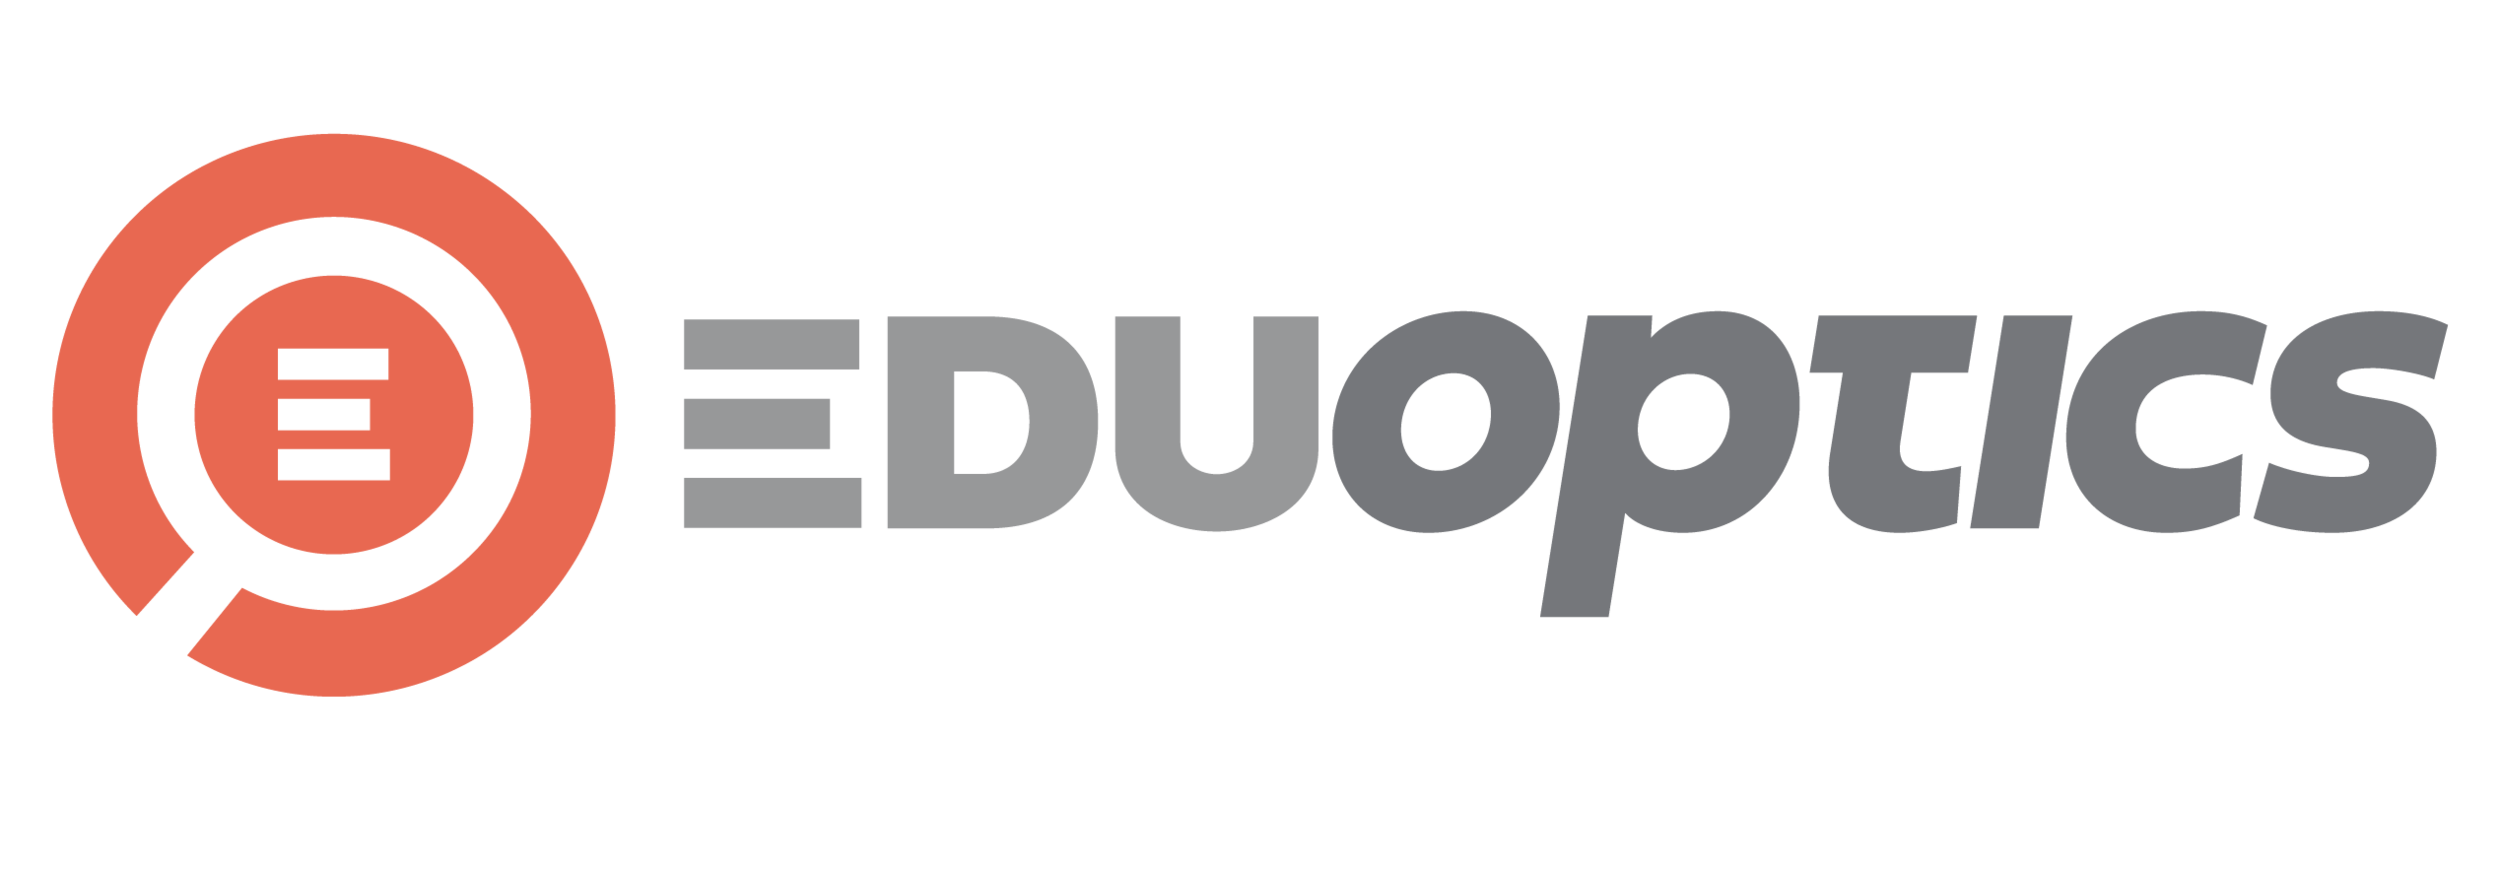 Final logo for EduOptics